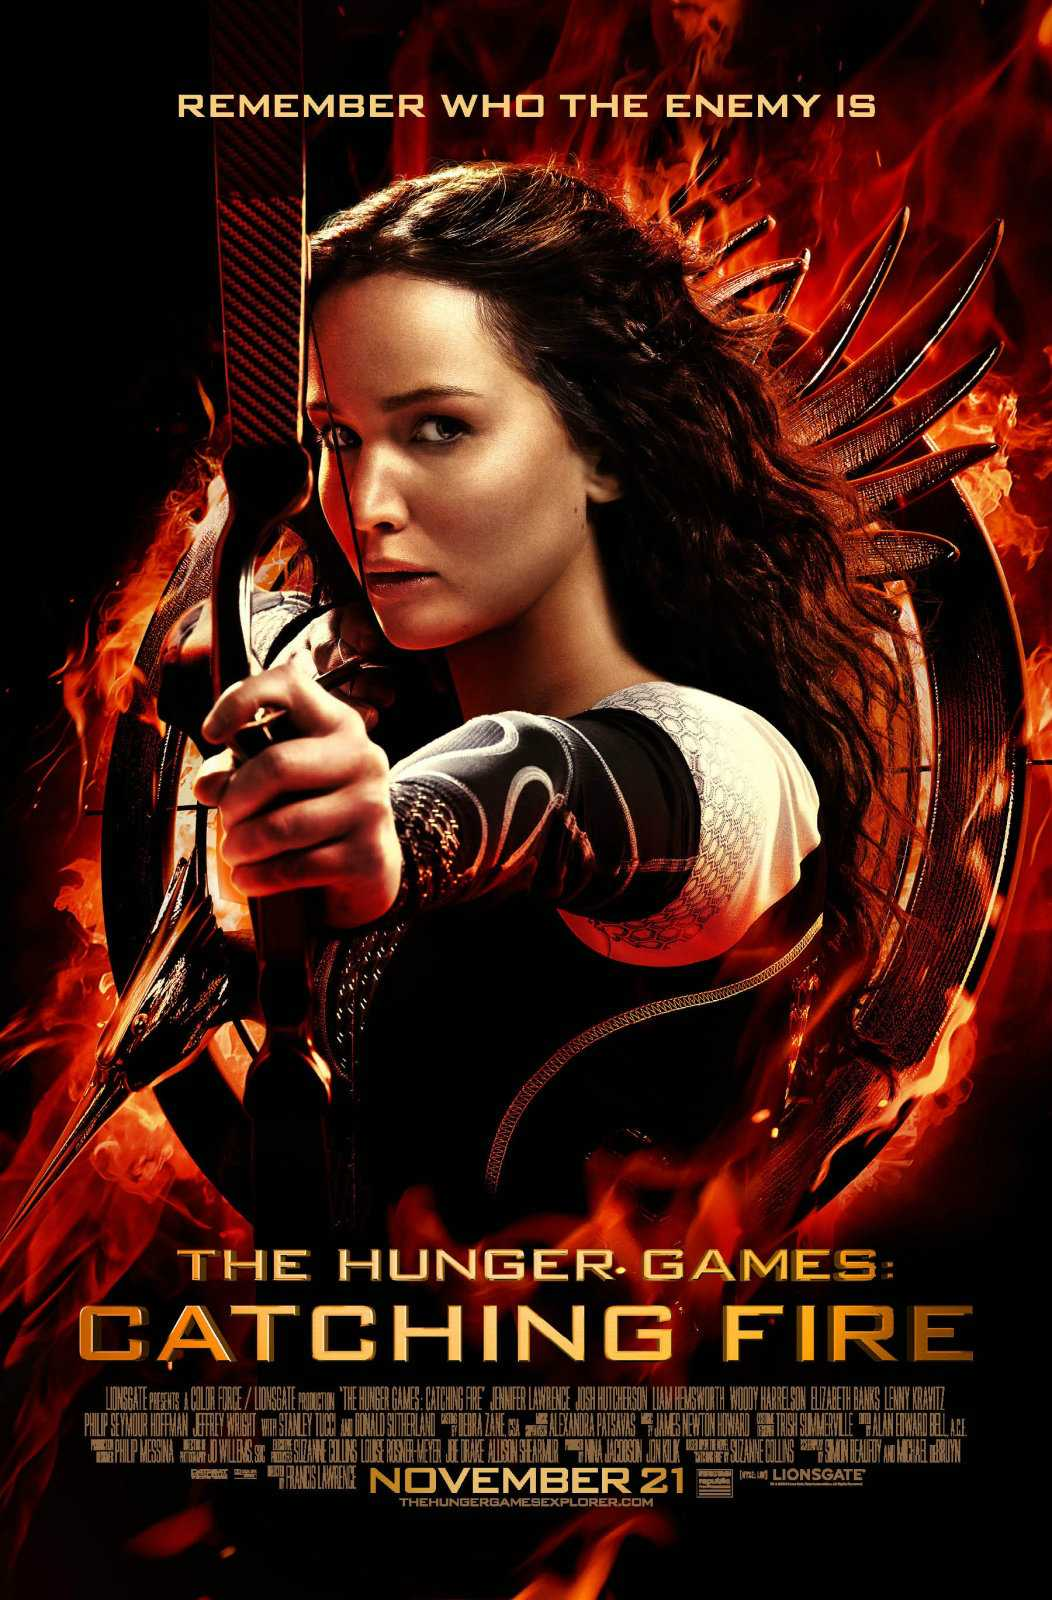 Catching Fire Still Leading The Way At The Box Office